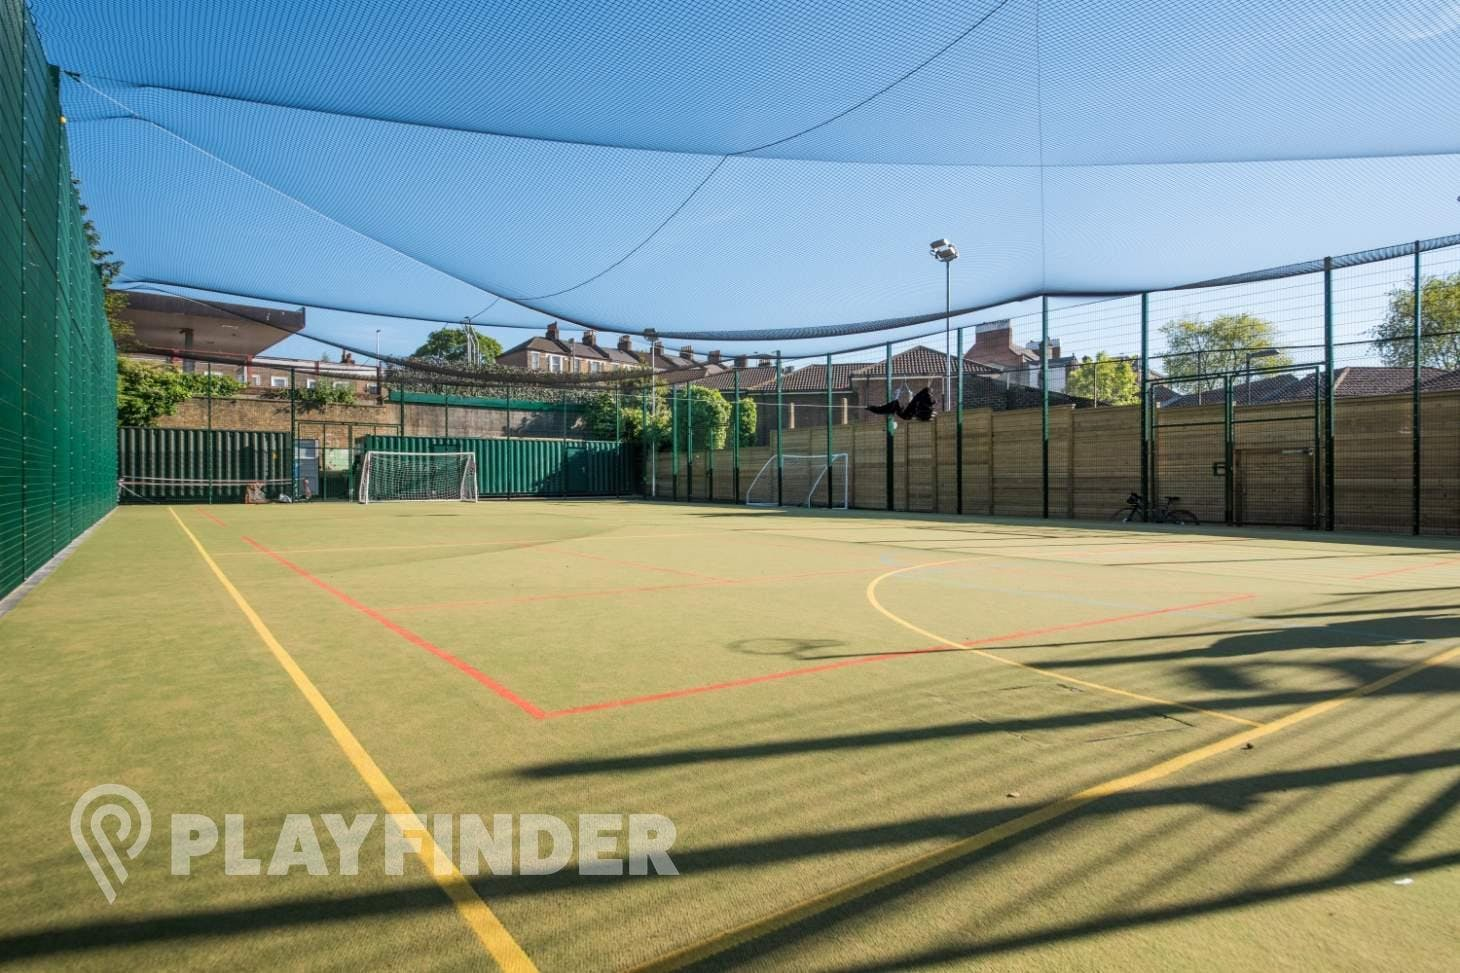 Clapham Old Town - 5aside.org 5 a side | Astroturf football pitch